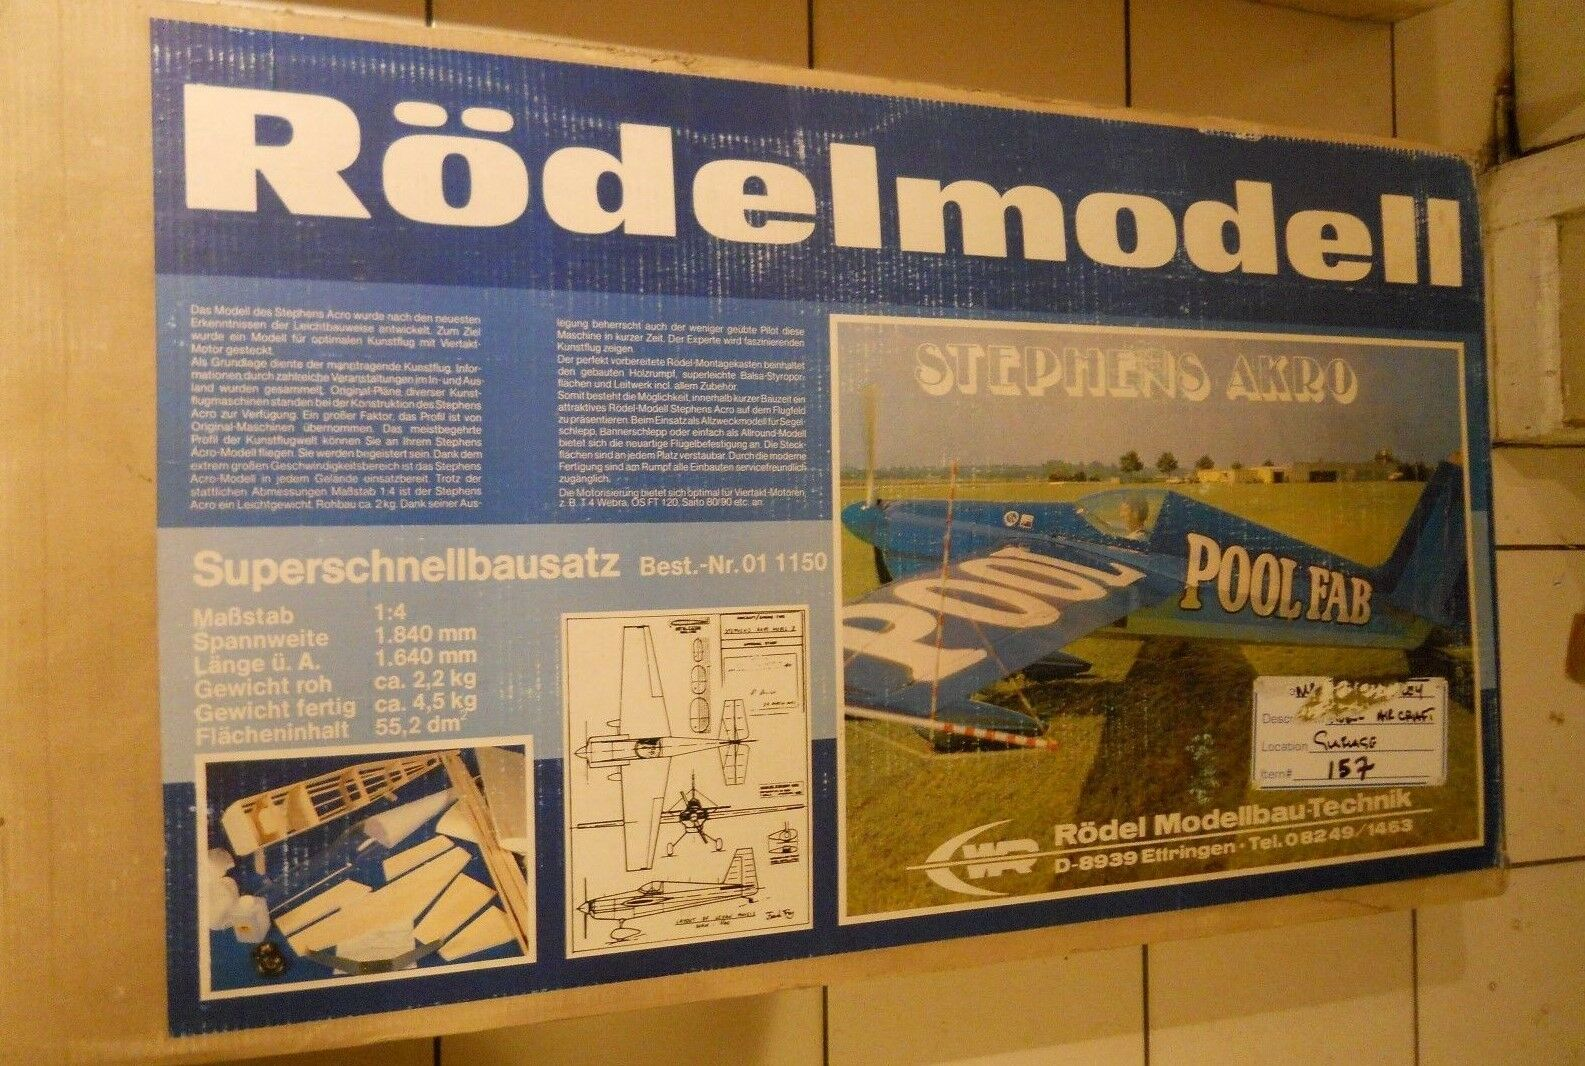 Rodelmodell Stephens Akro 1 4 Scale Almost Ready To Cover Kit 011150 Rare